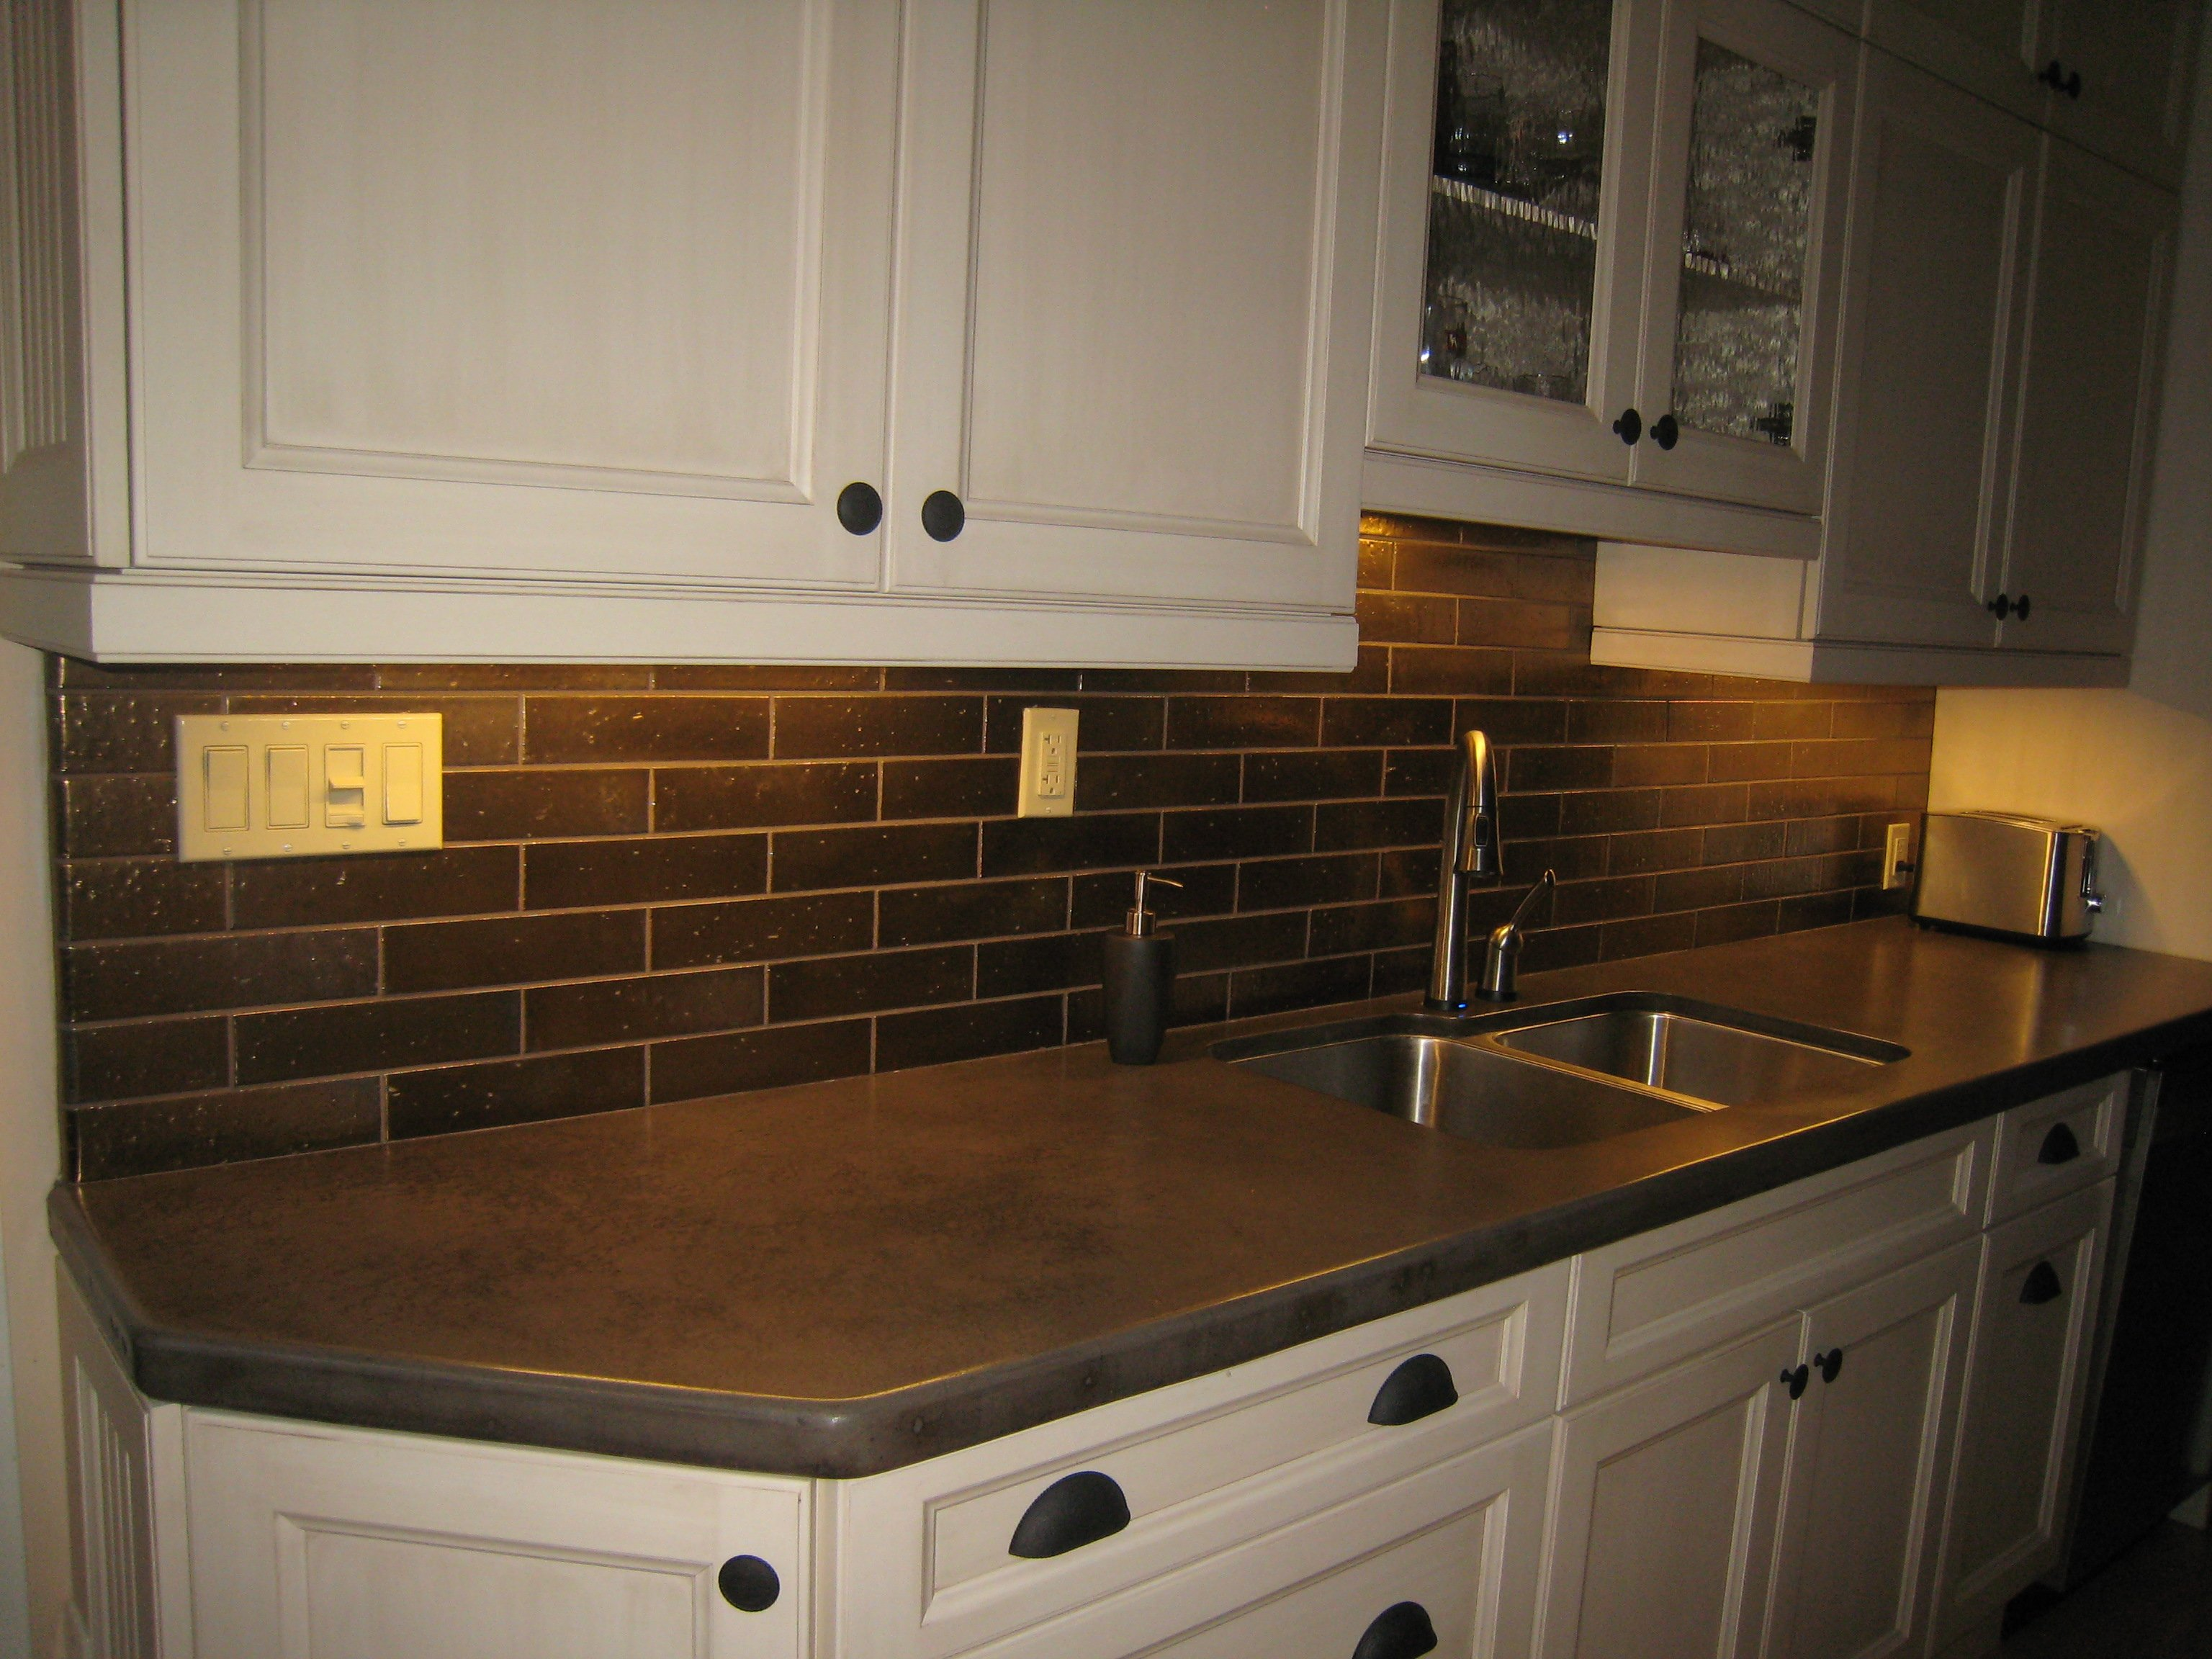 Beau Brown Kitchen Backsplash.